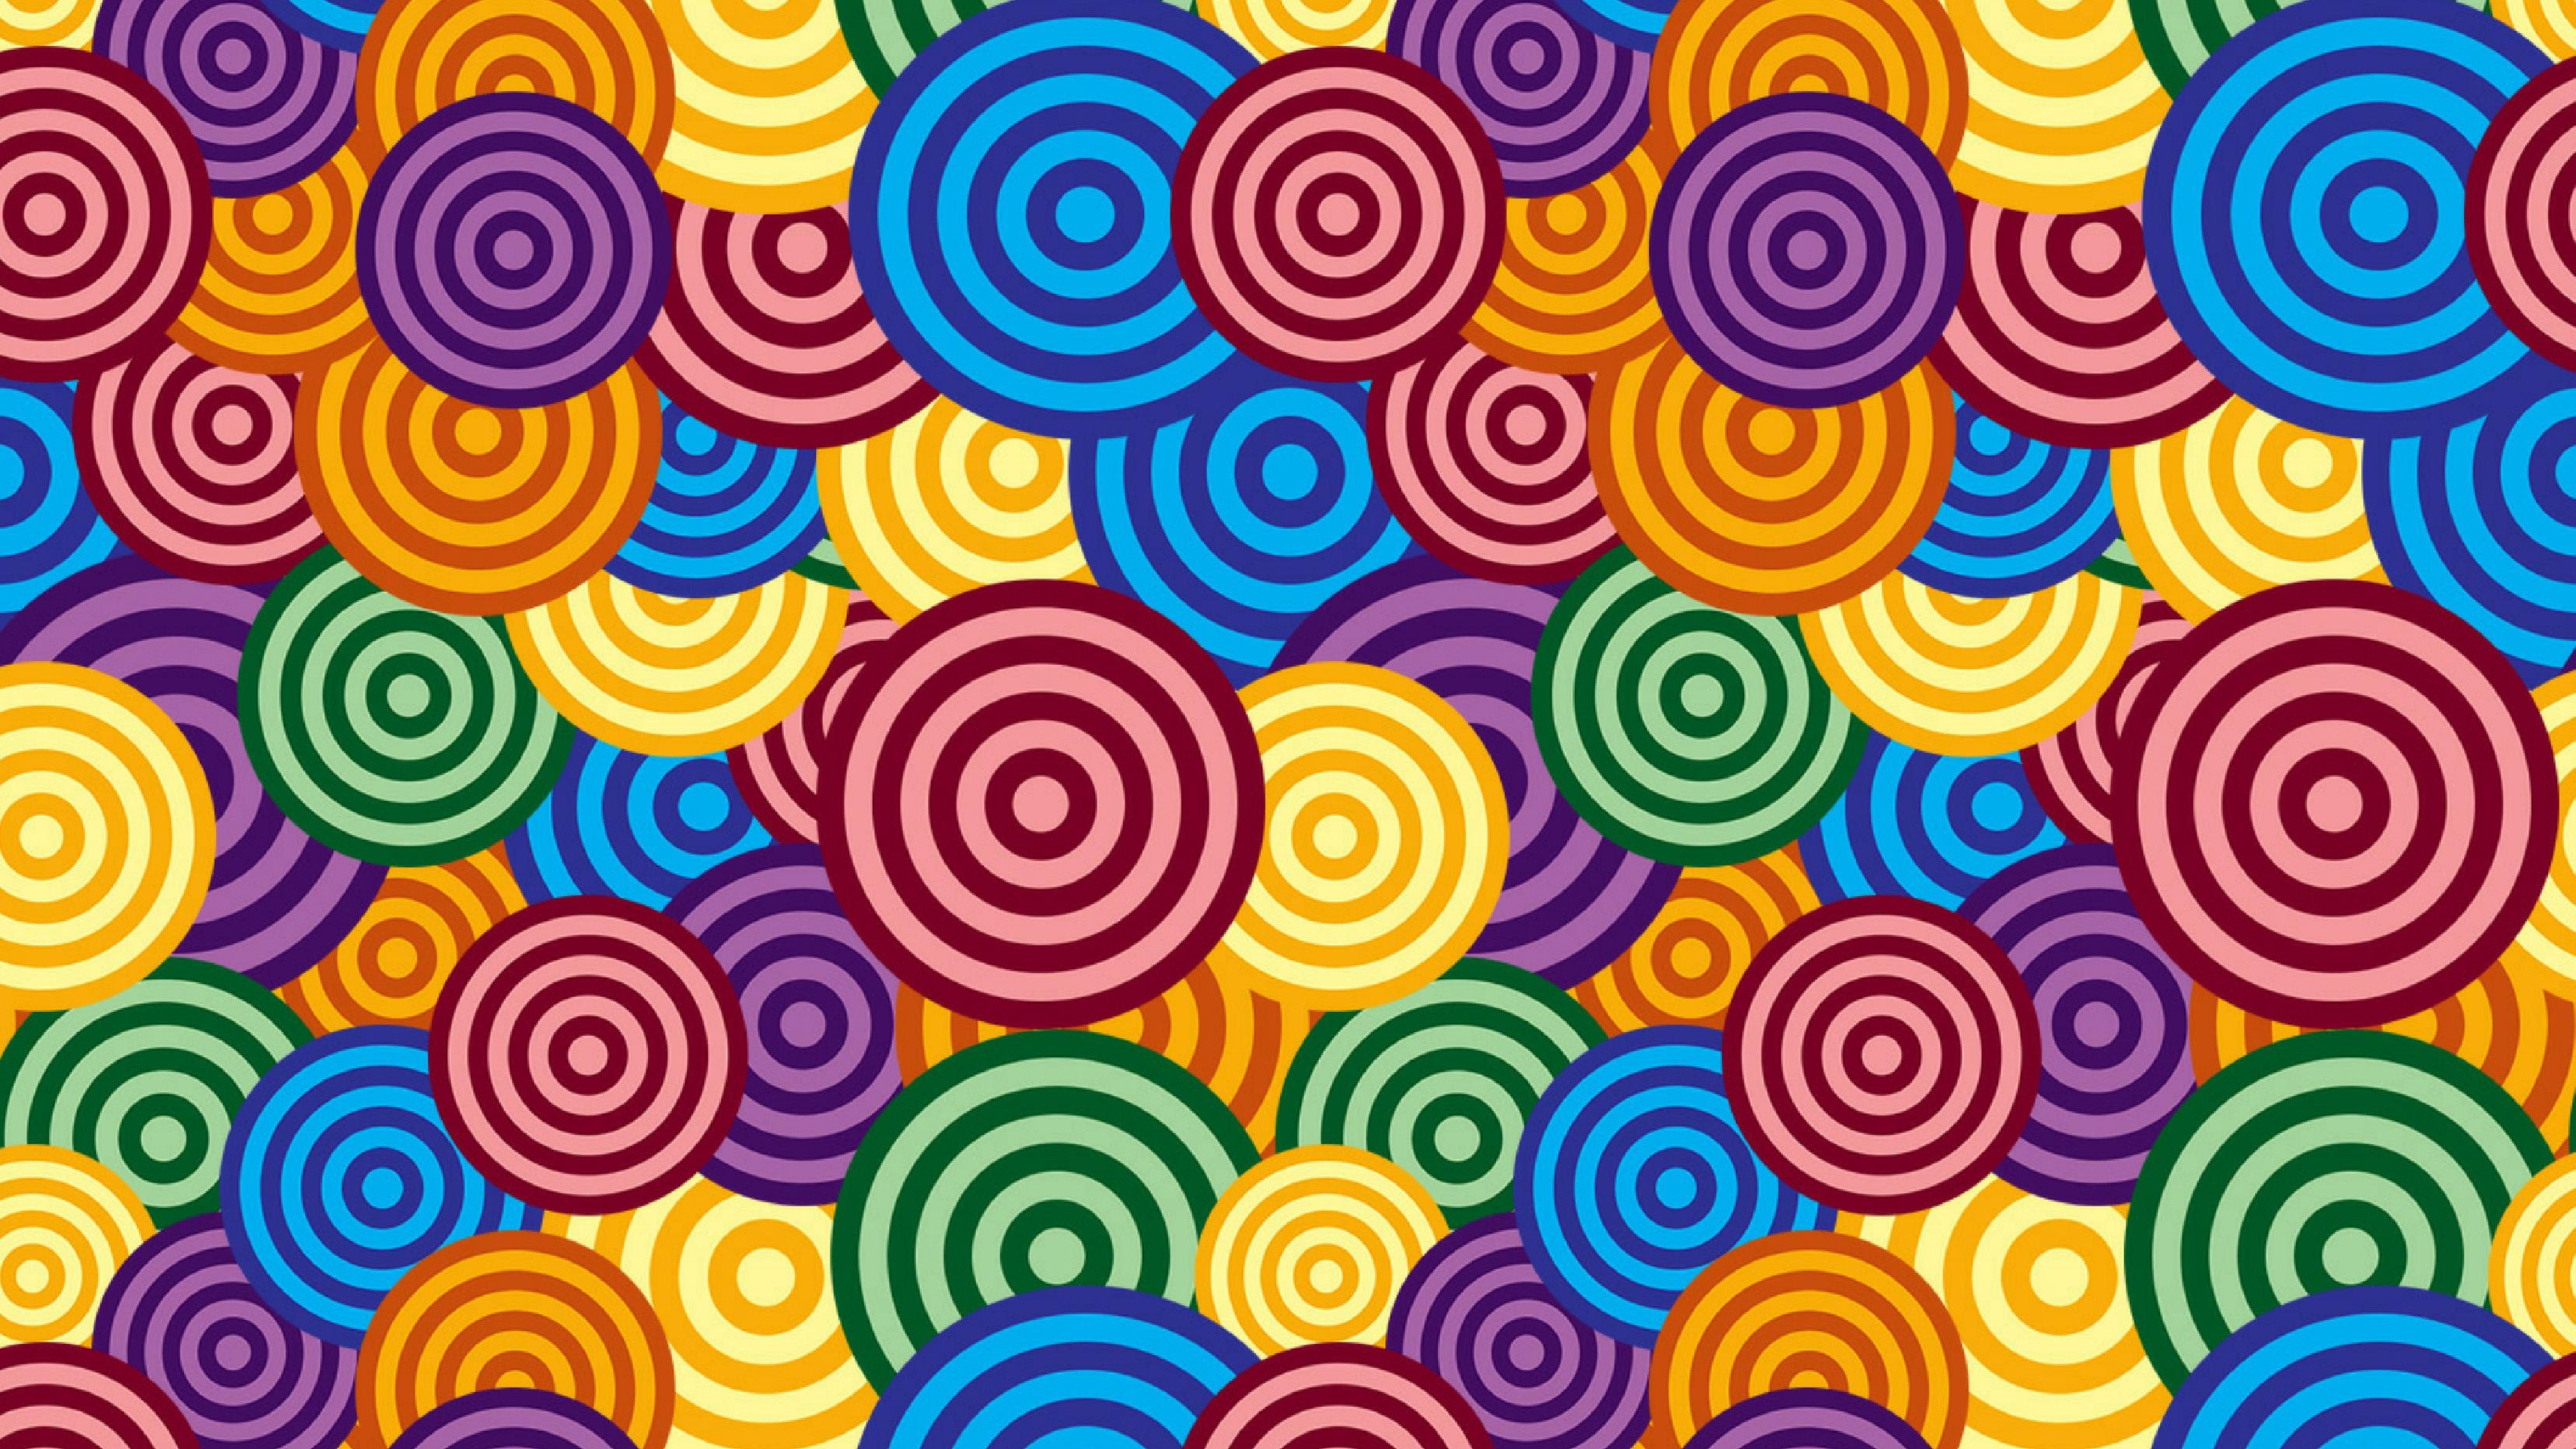 Photoshop for Lunch™ - Overlapping and Random Circles Patterns